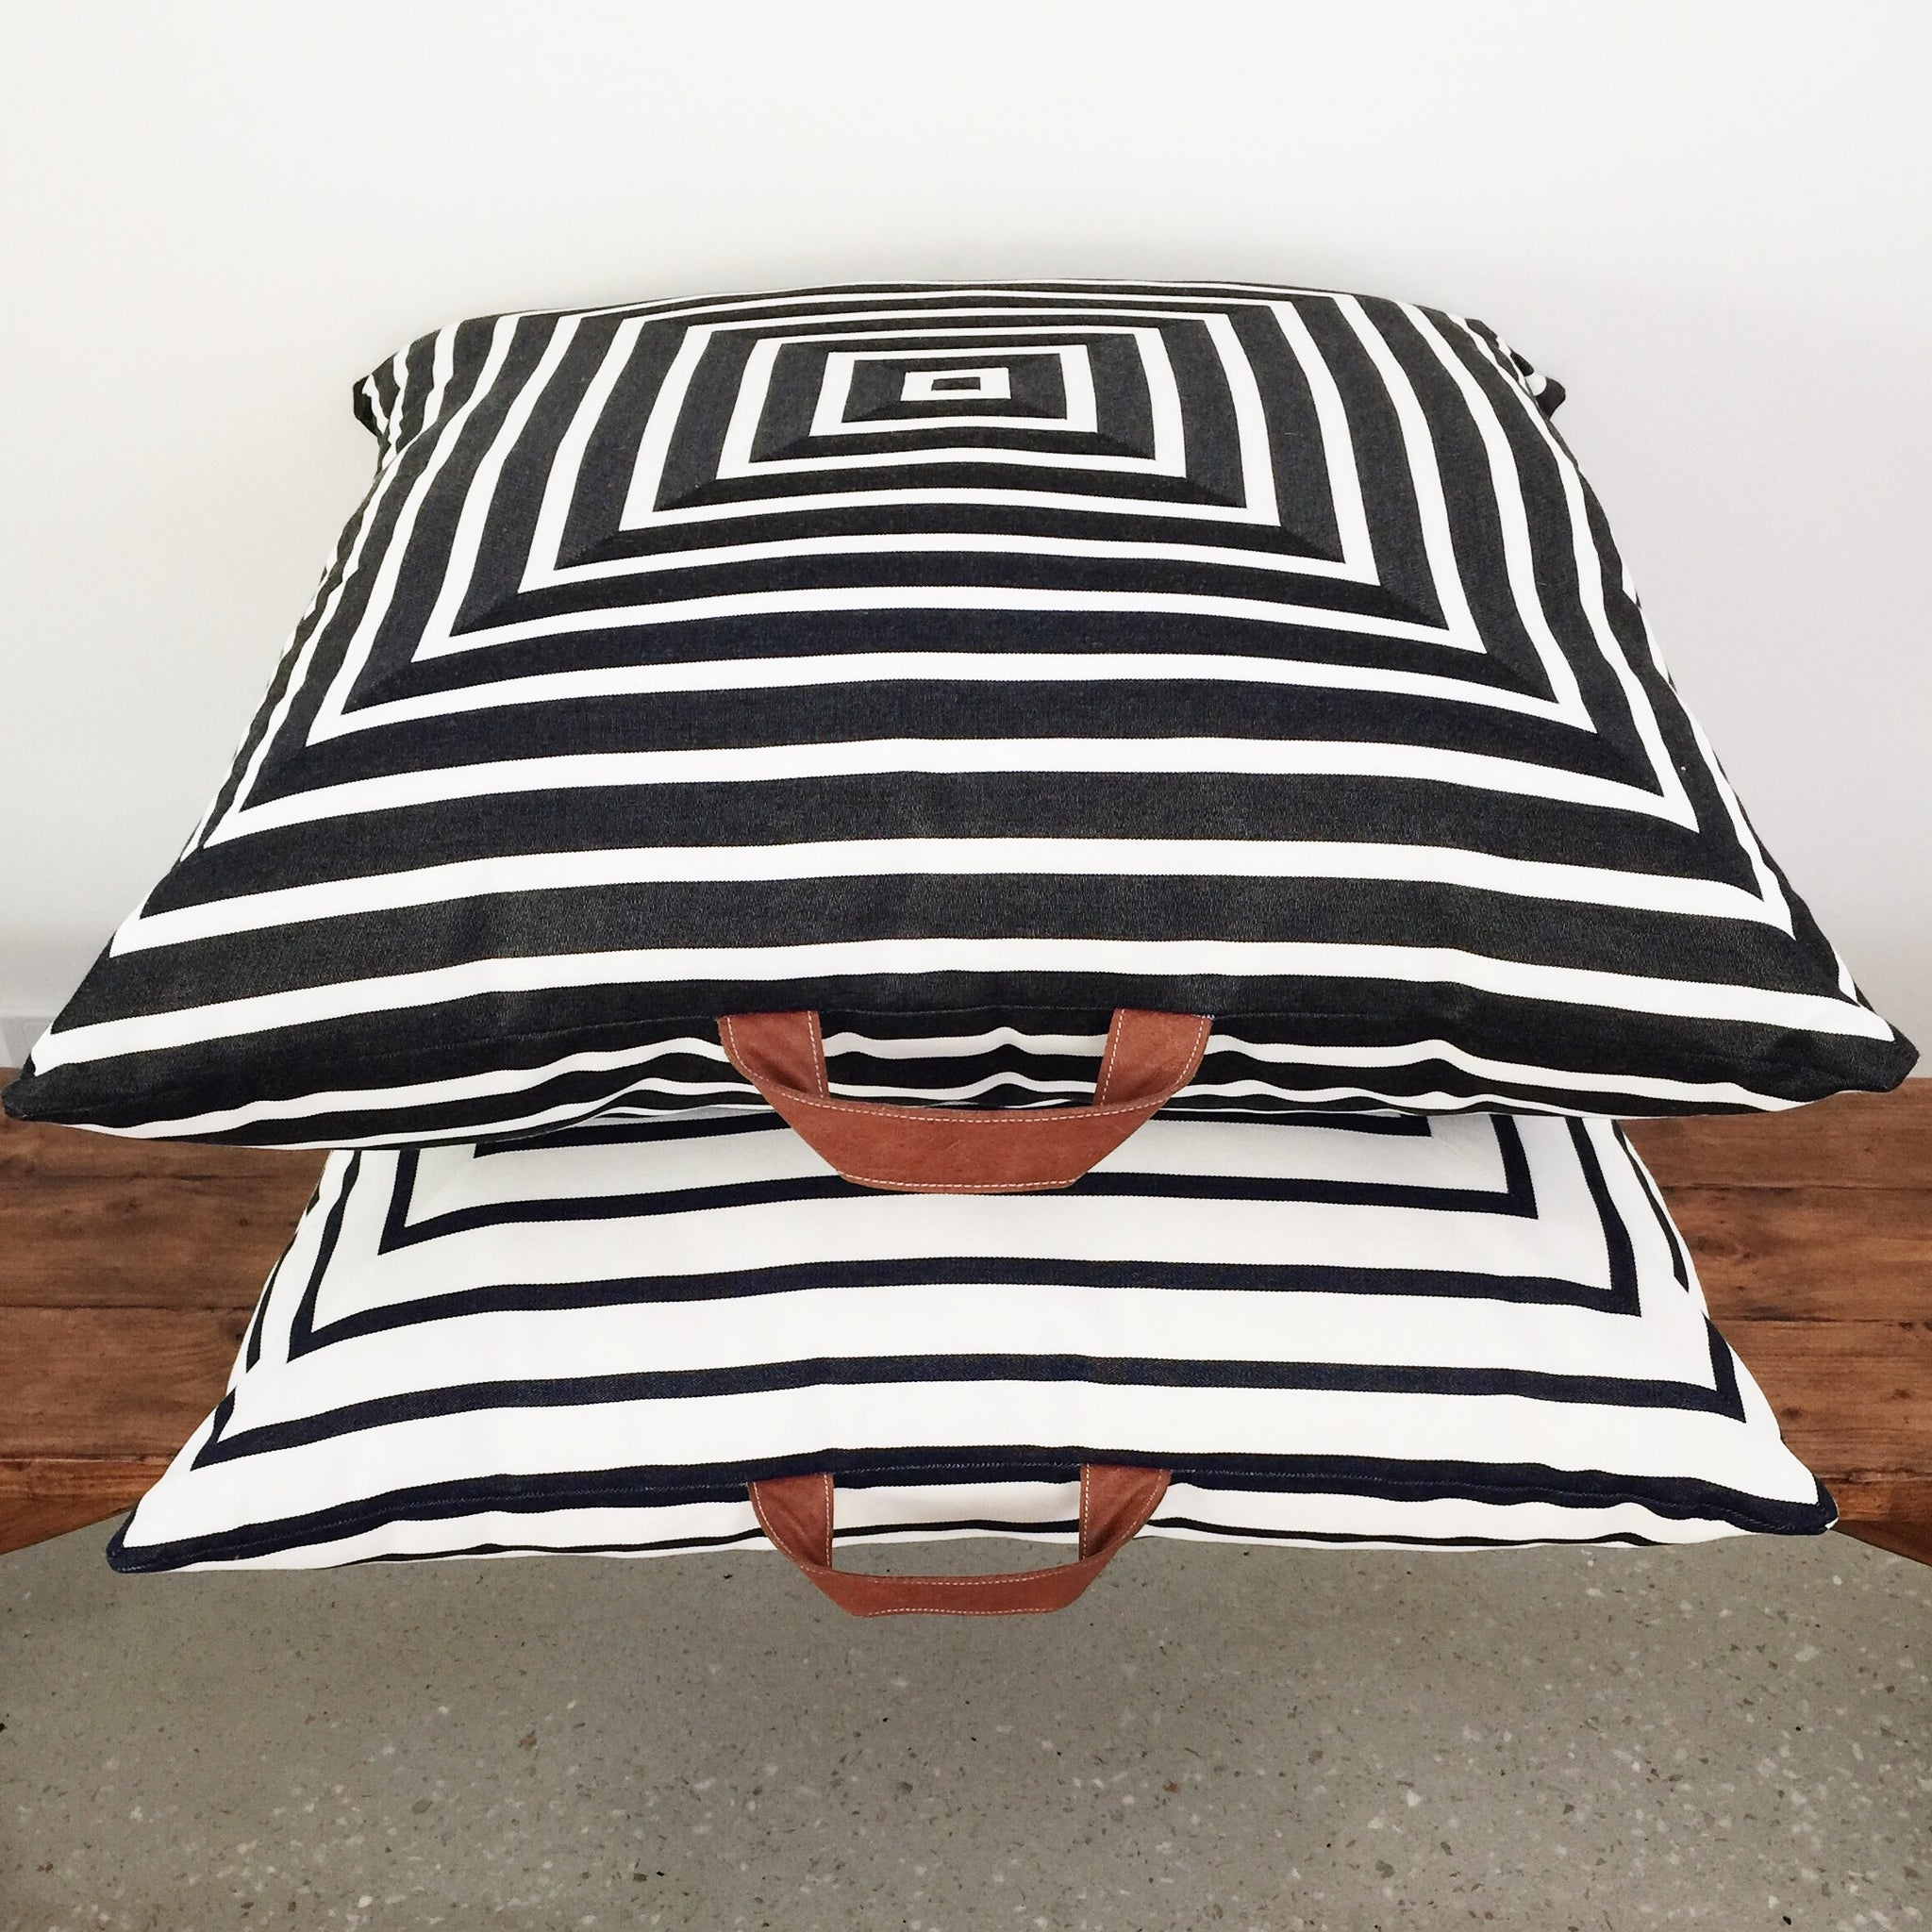 cushions floor product tangerine cushion ayana hupper round